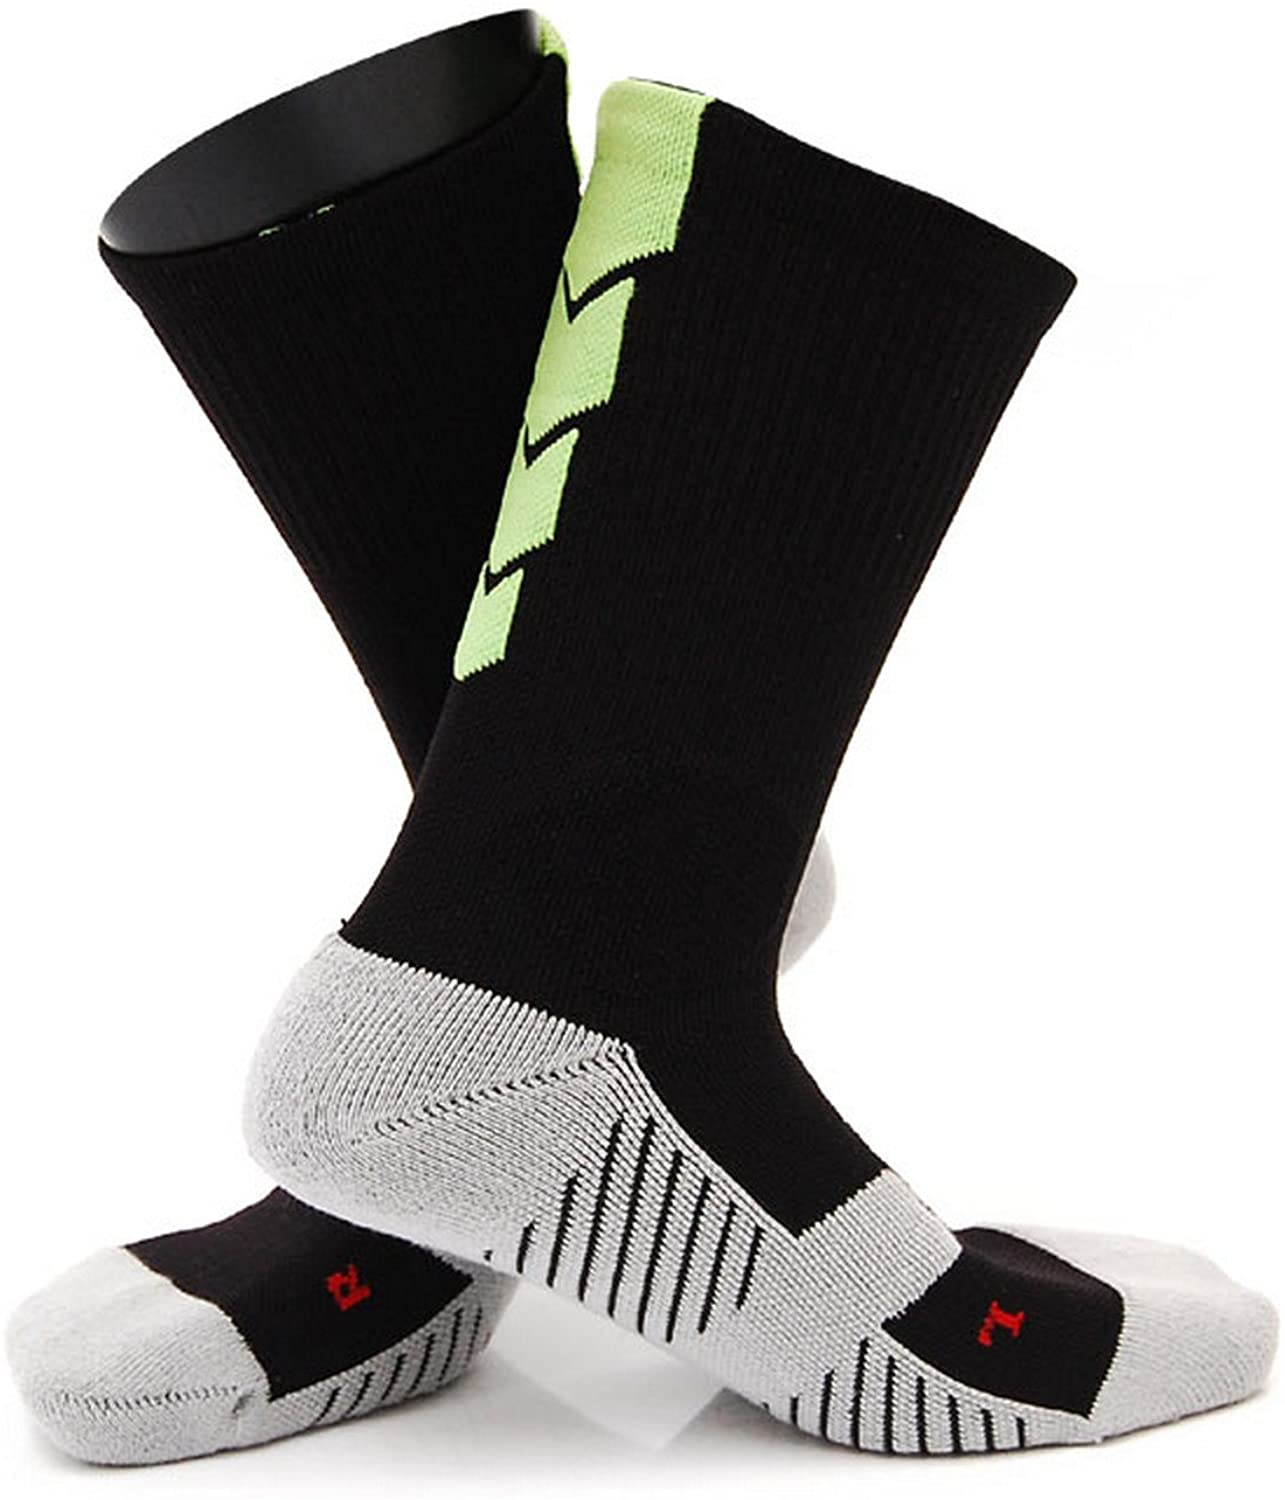 Lian LifeStyle Big Girl's 1 Pair All Sport Crew Socks 0027 Size M